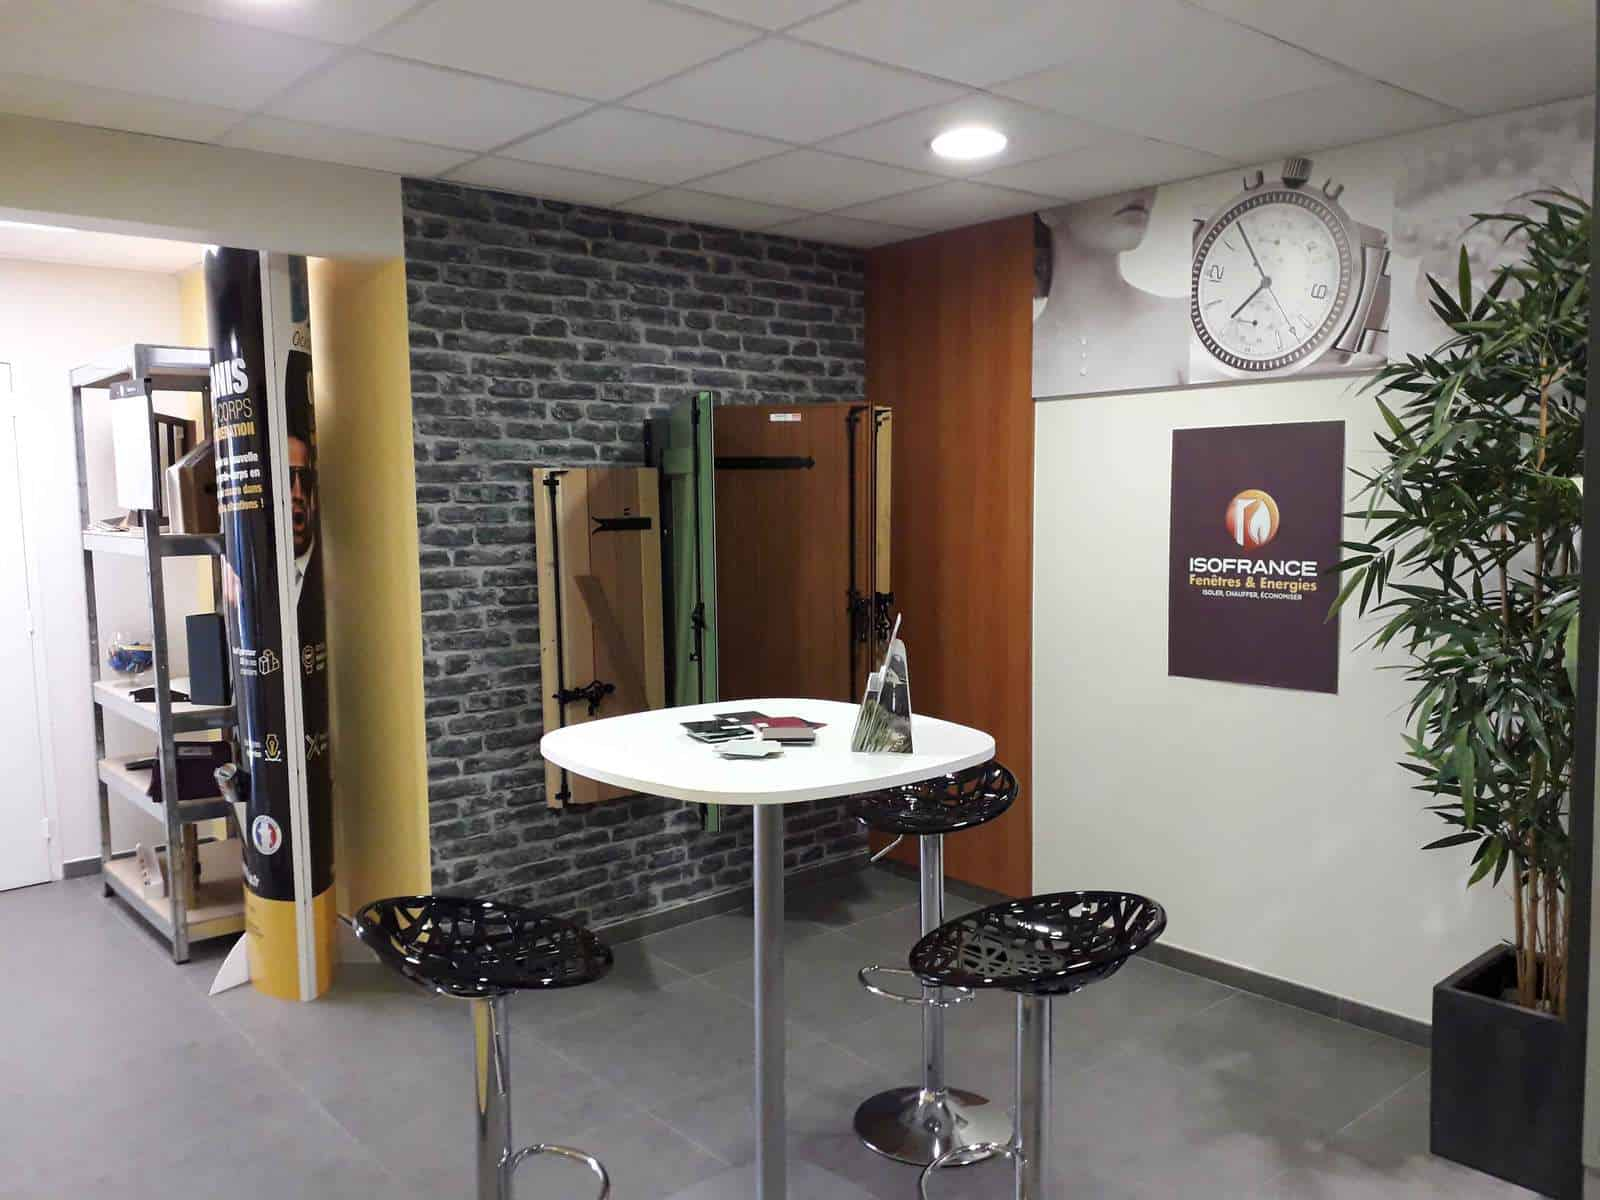 Showroom concessionnaire ISOFRANCE Fenêtres & Energies